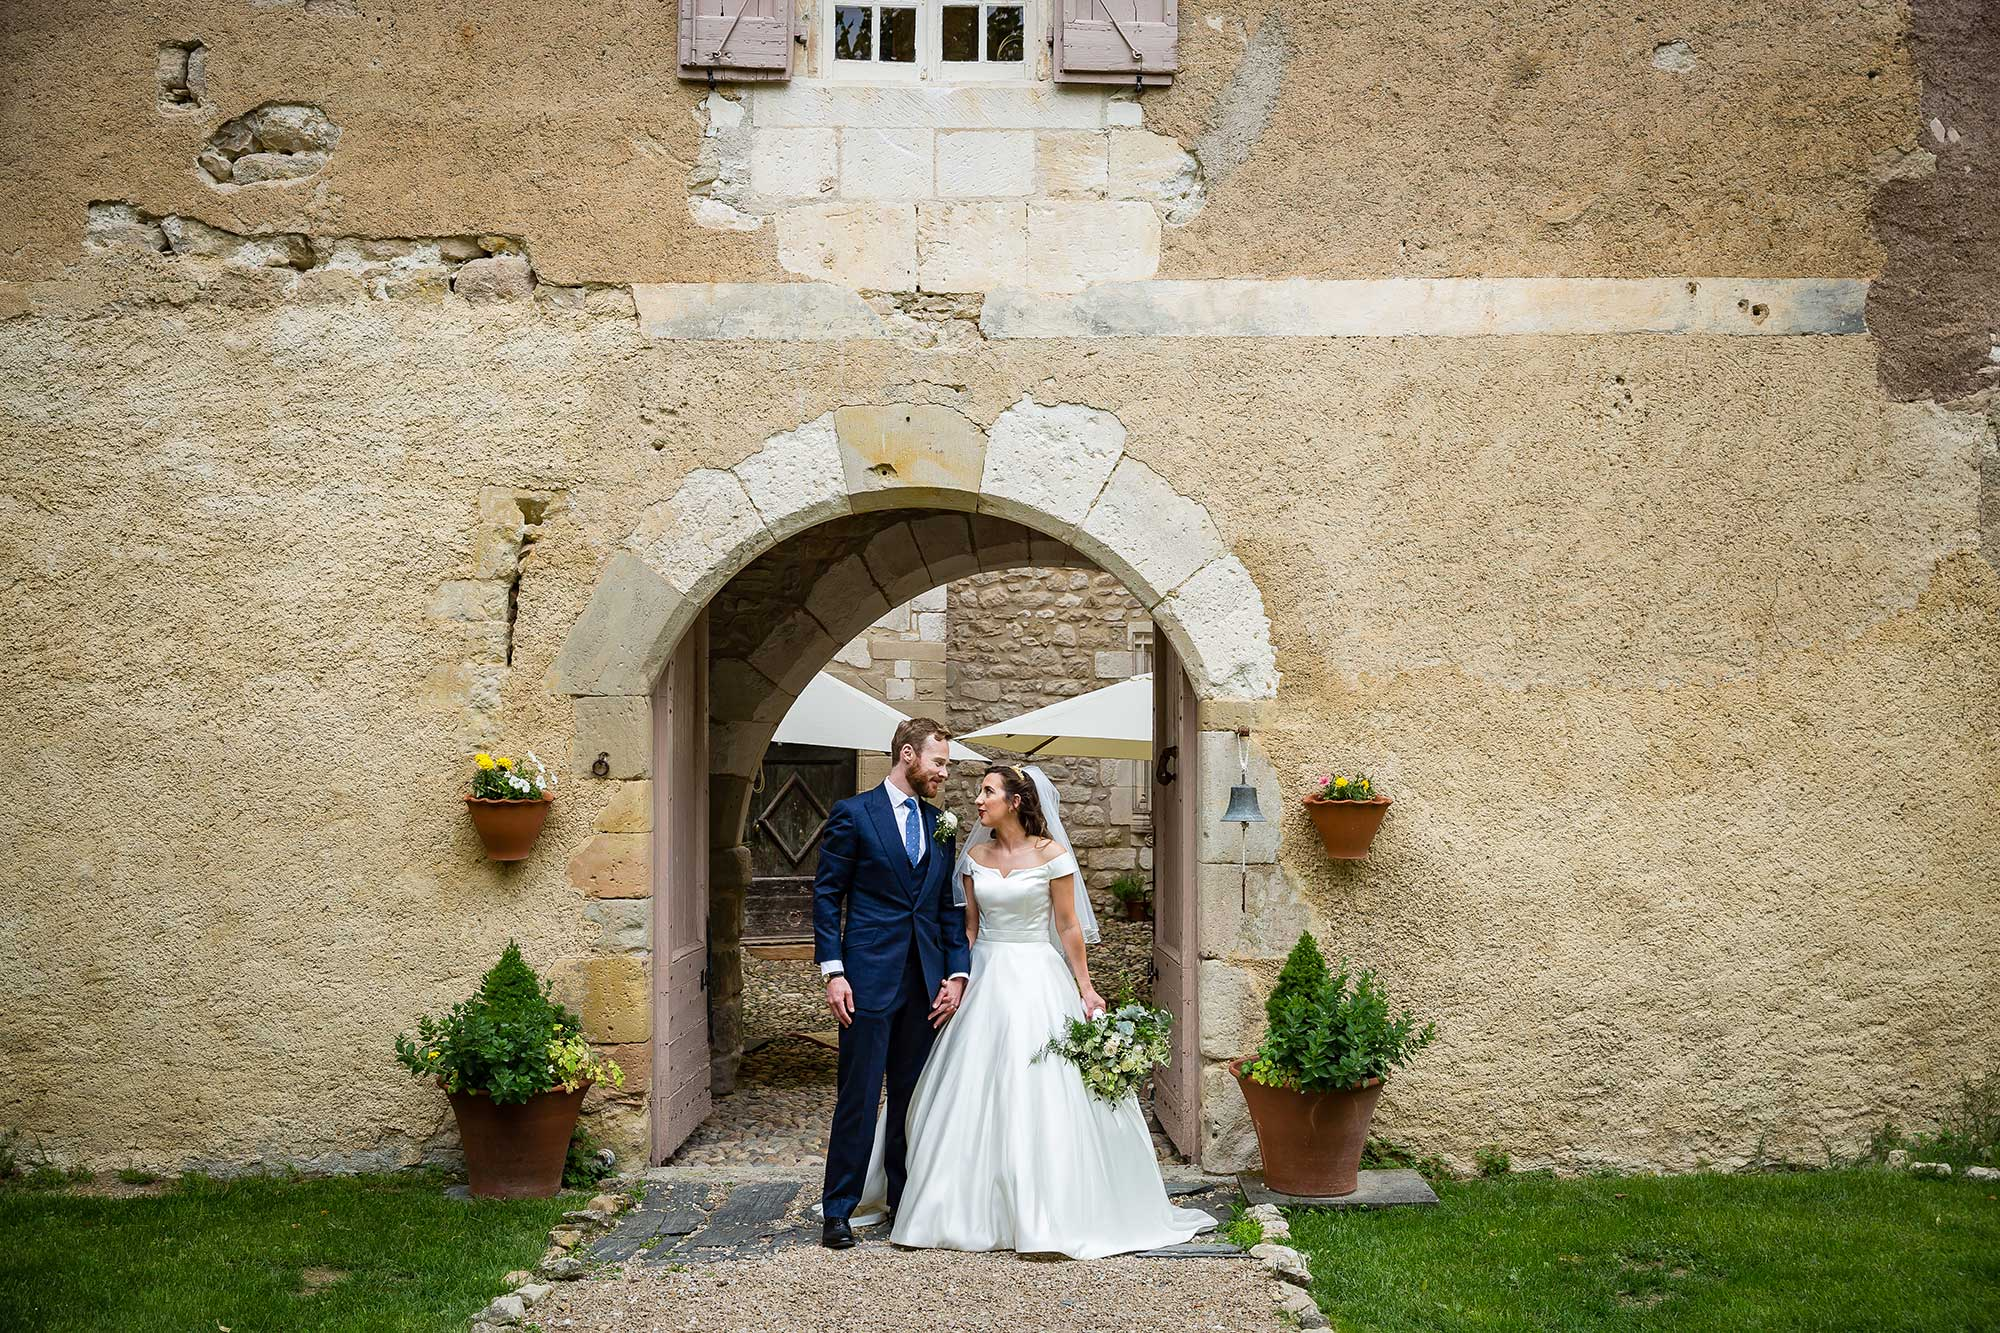 Bride and groom at Chateau de Brametourte